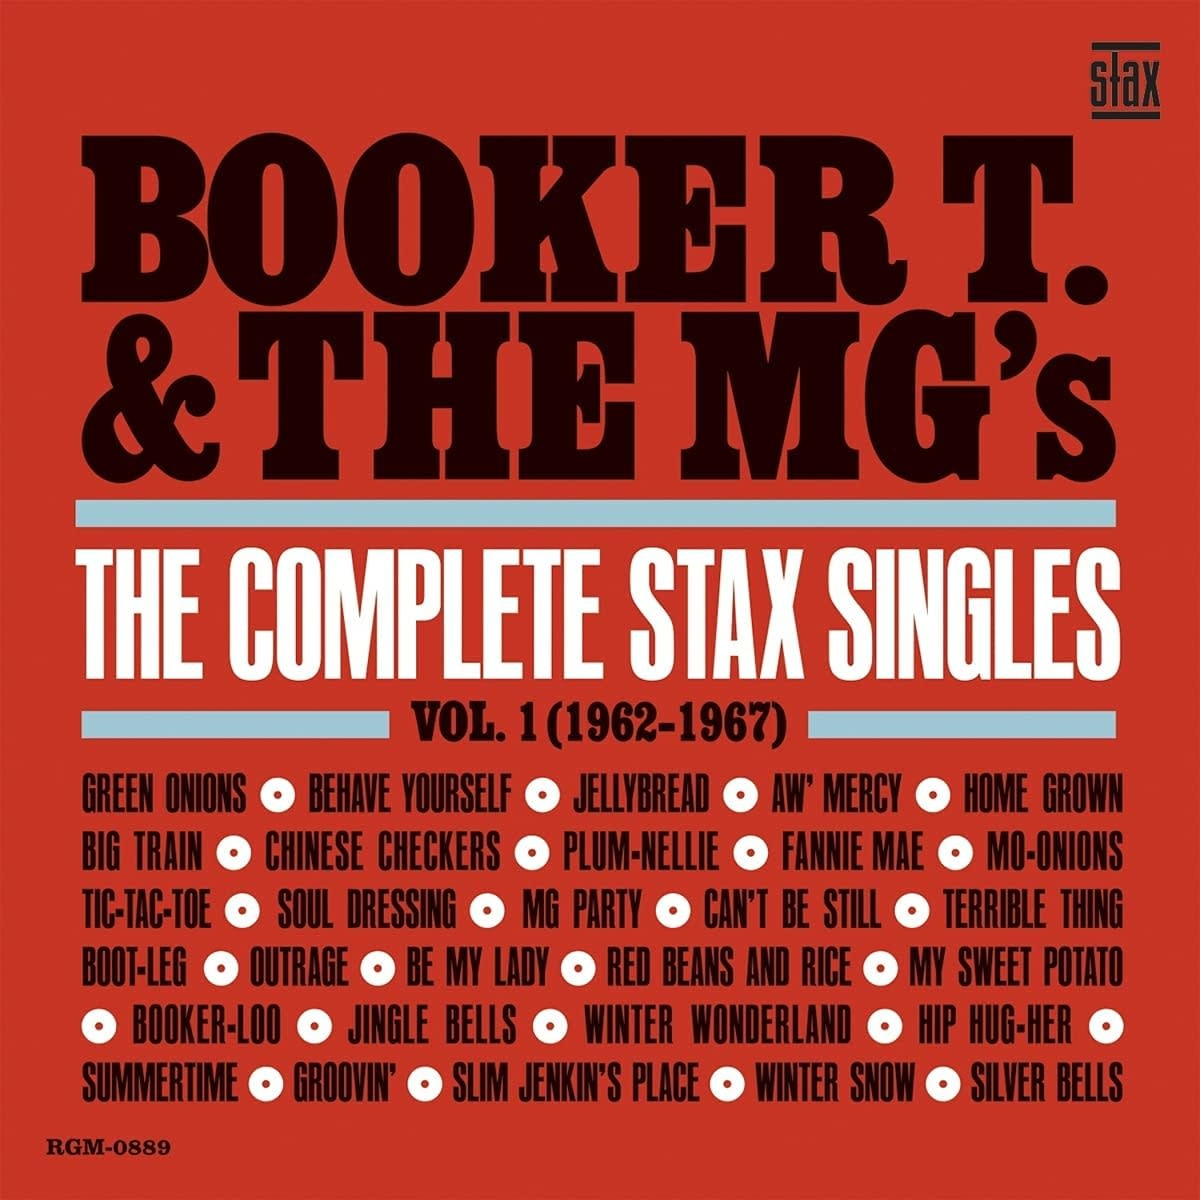 Booker T. & The MG's – The Complete Stax Singles, Vol. 1 (1962-1967)